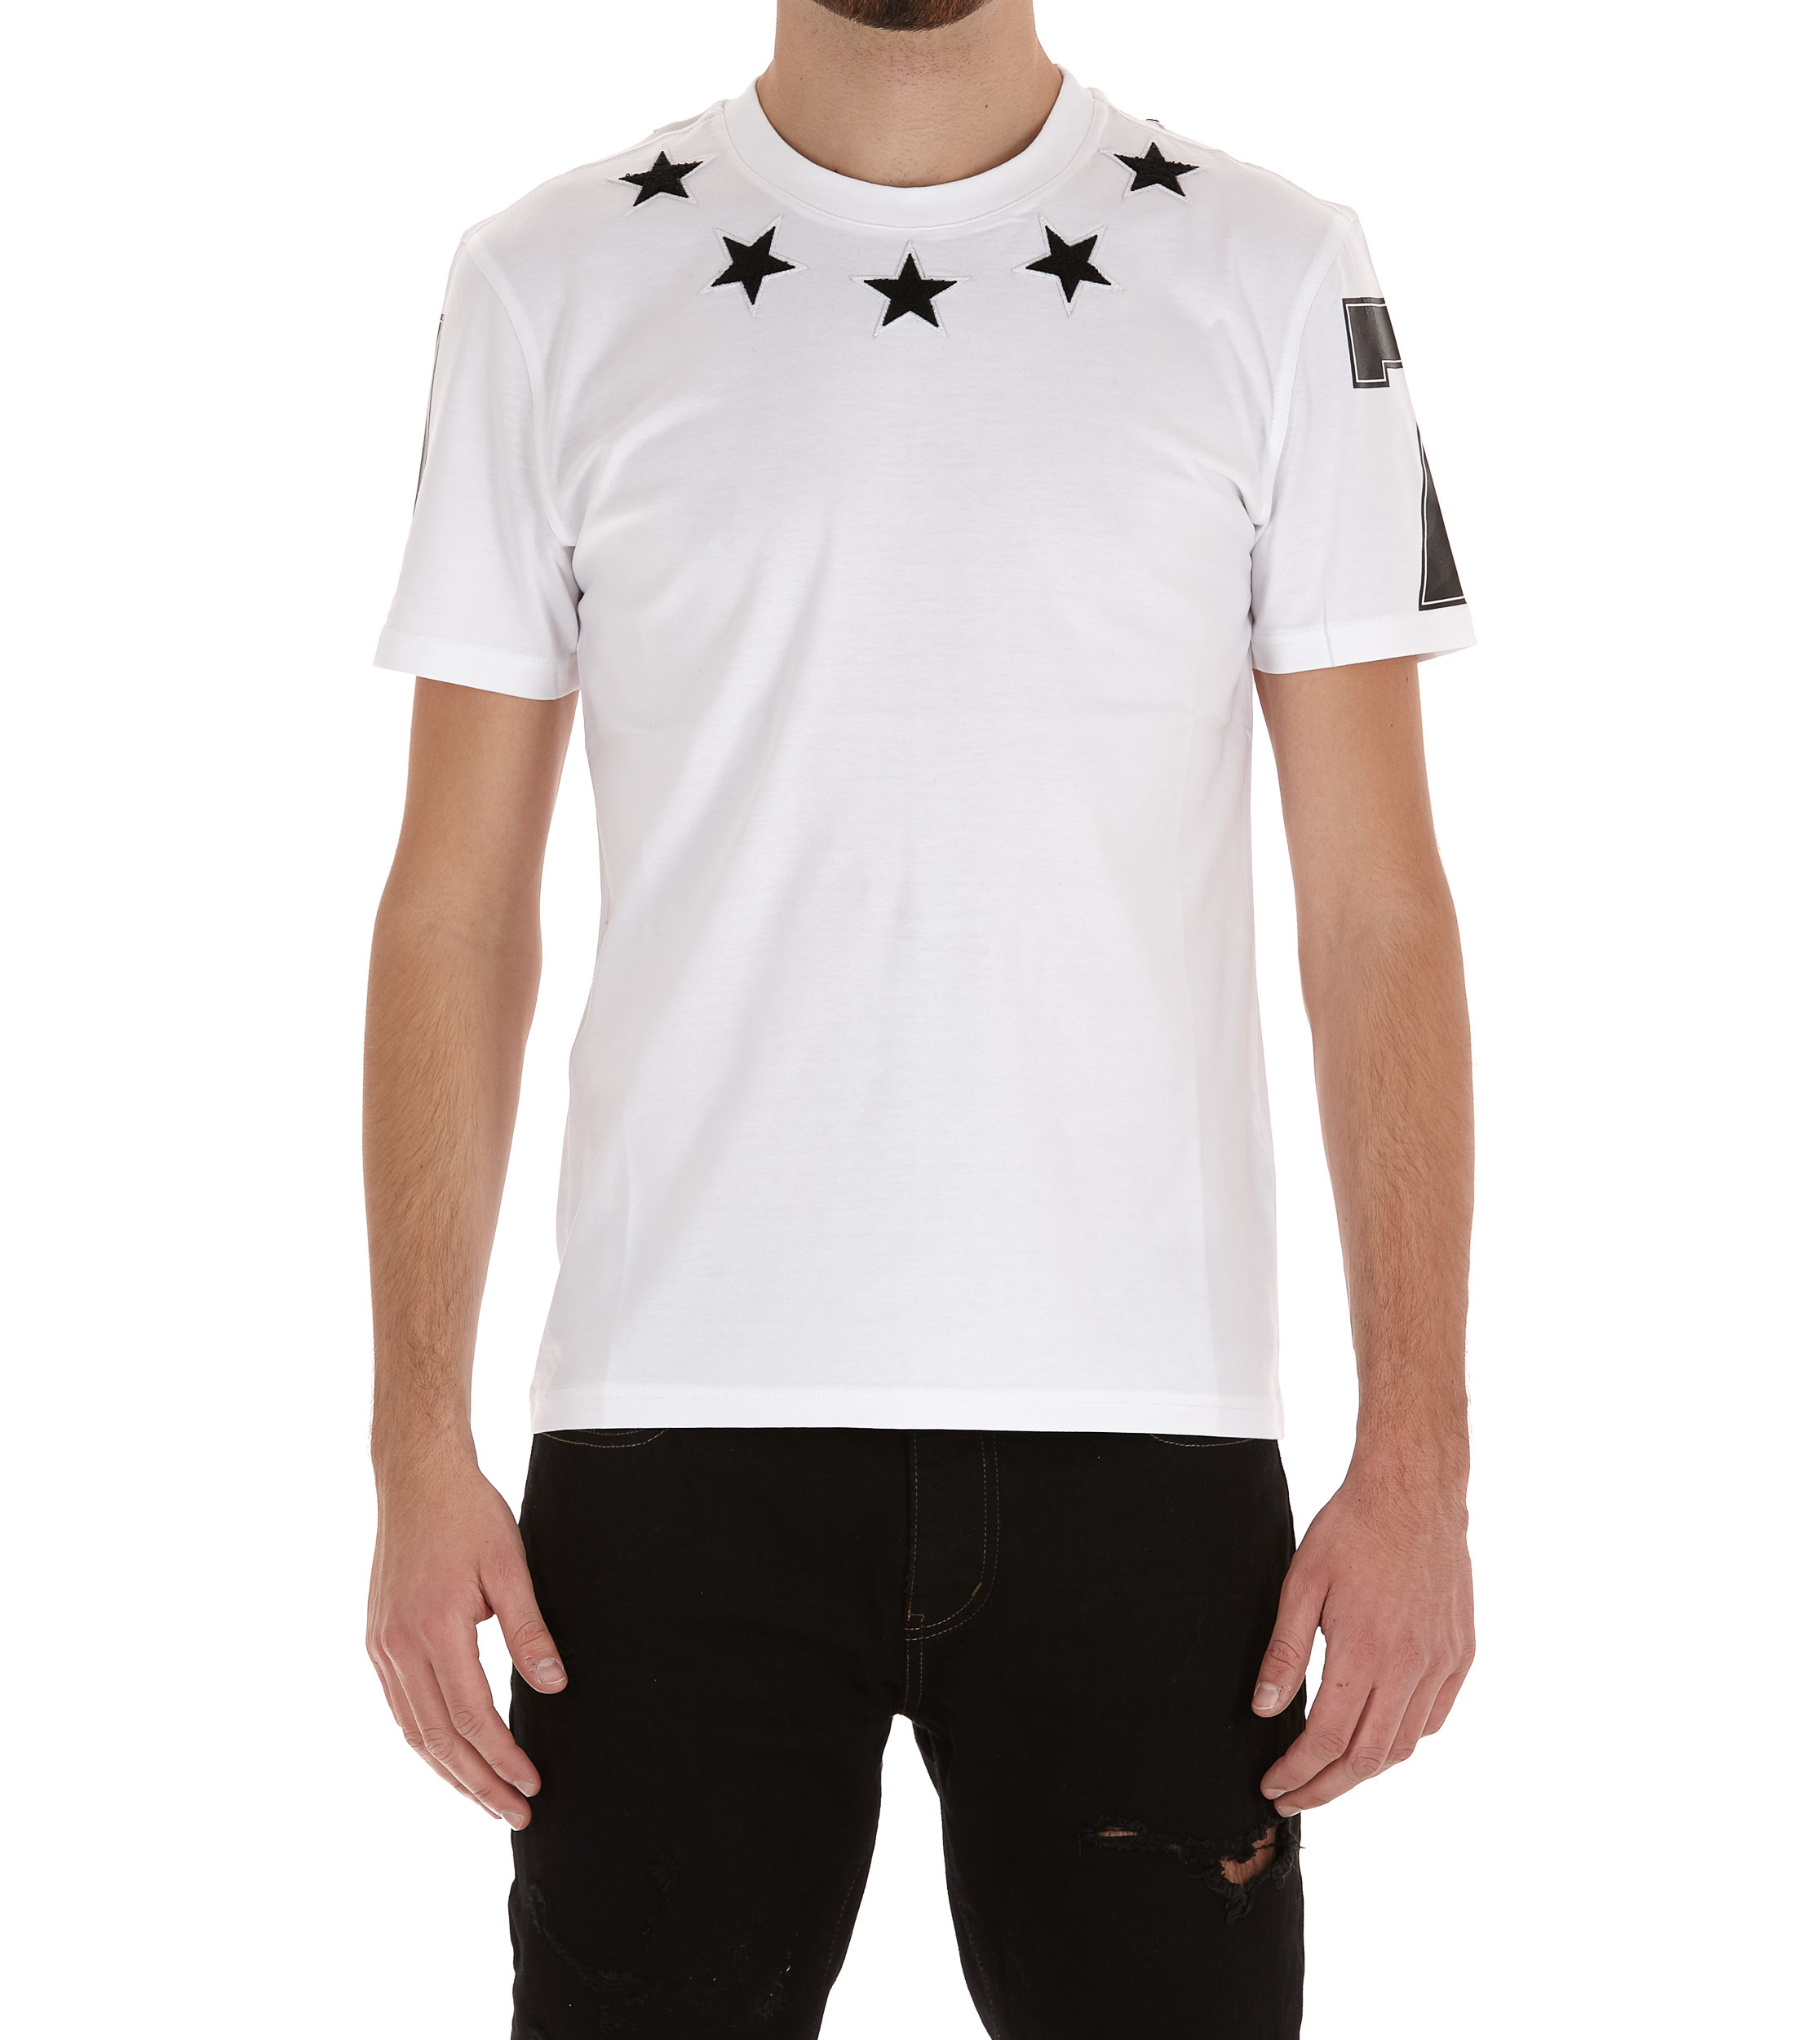 VIP SALE!国内発送☆ GIVENCHY スターTシャツ